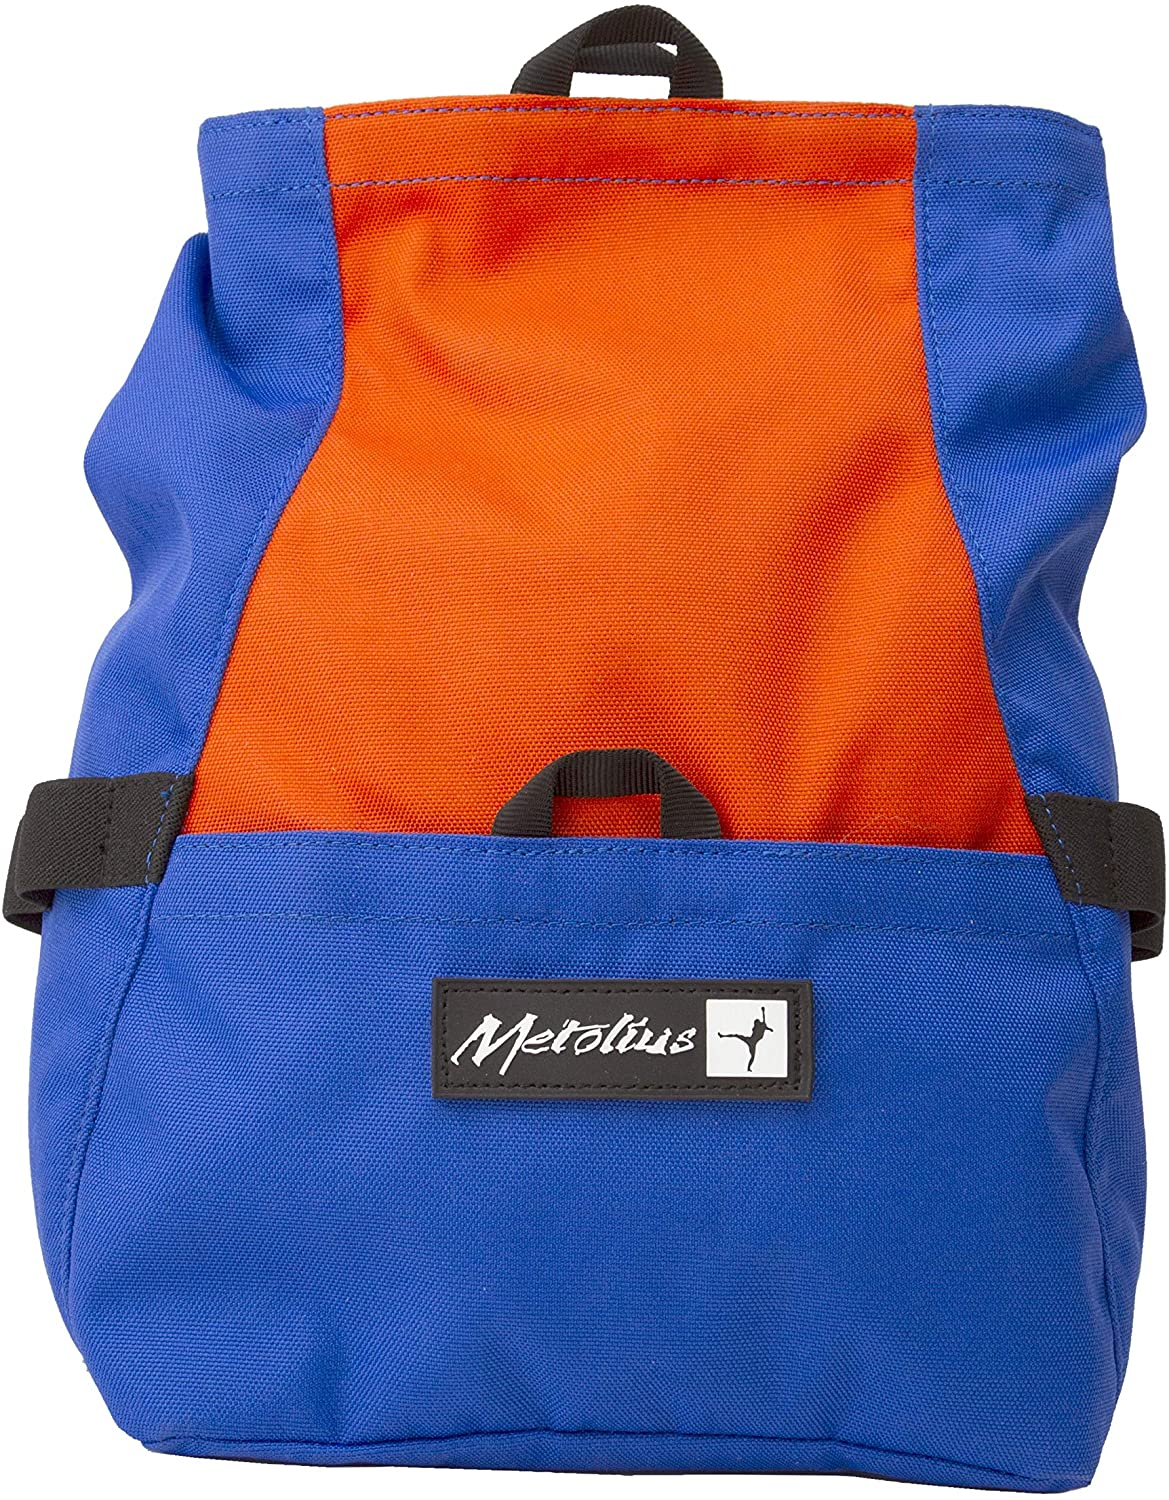 Metolius Chalk n' Roll Chalk Bag